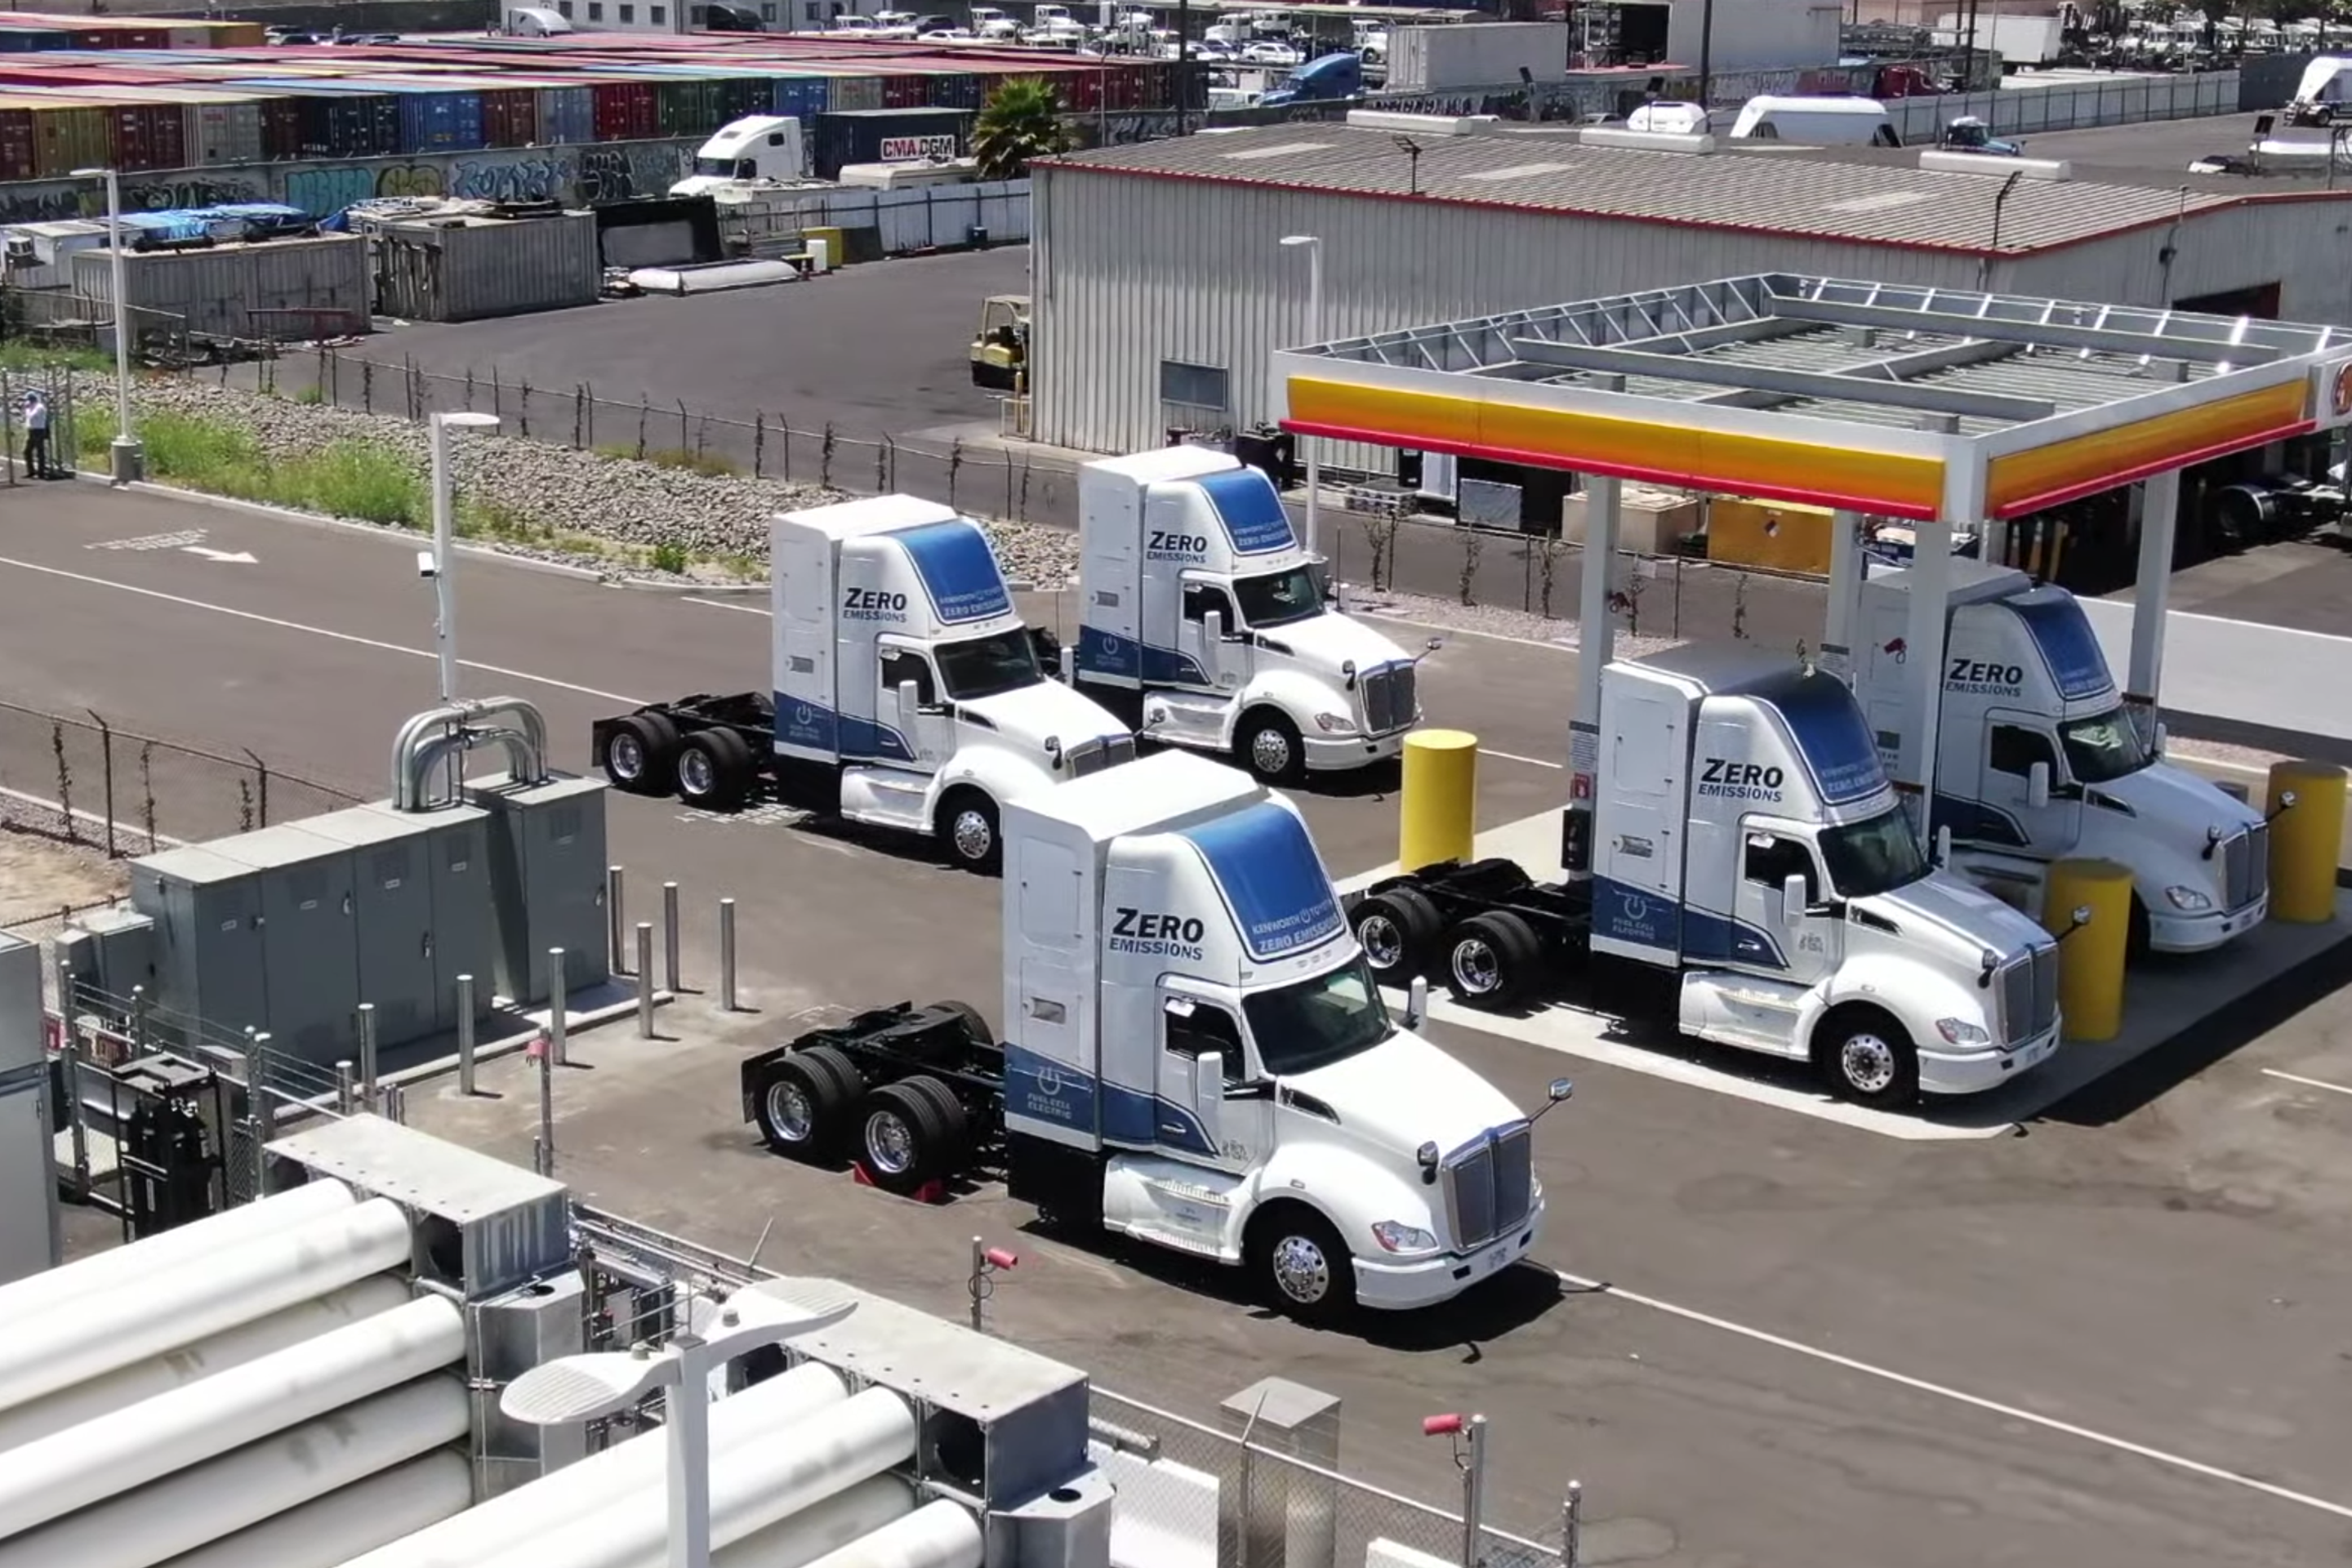 Port of Los Angeles Debuts Hydrogen Fuel Cell Electric Trucks and Fueling Stations